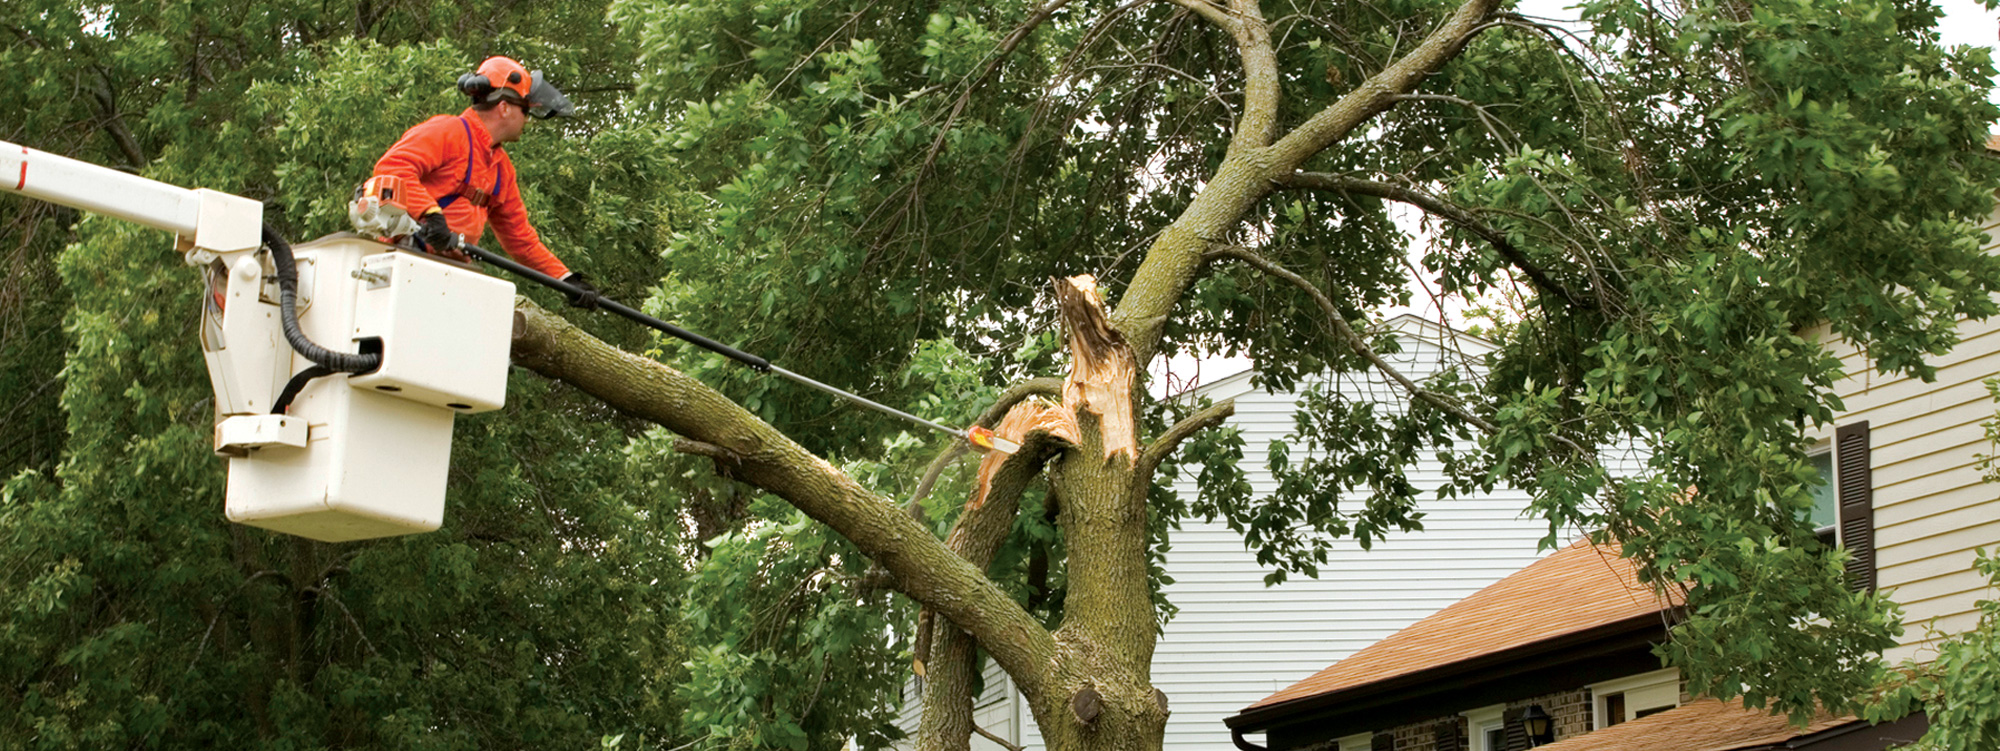 Tree worker safety materials